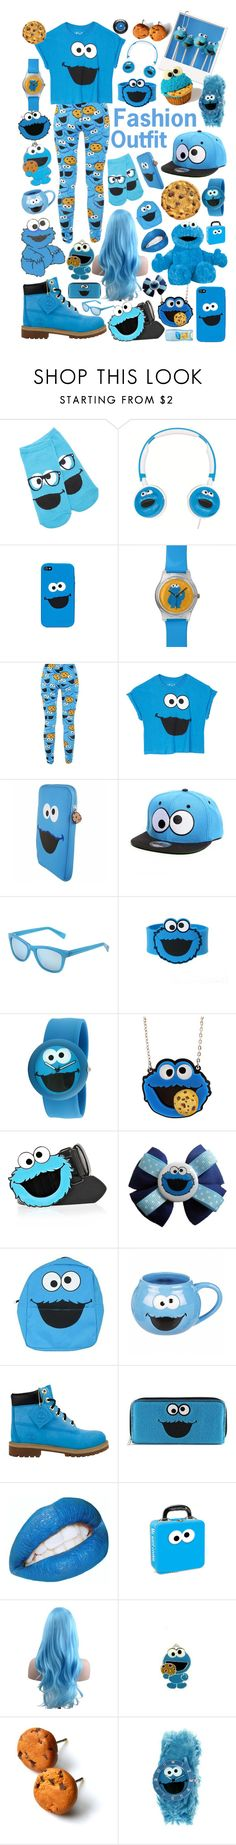 """""""Cookie Monster Outfit"""" by kitkatlyne ❤ liked on Polyvore featuring Forever 21, dreamGEAR, Sesame Street, Cole Haan, River Island, Timberland, Nexus and Lancôme"""